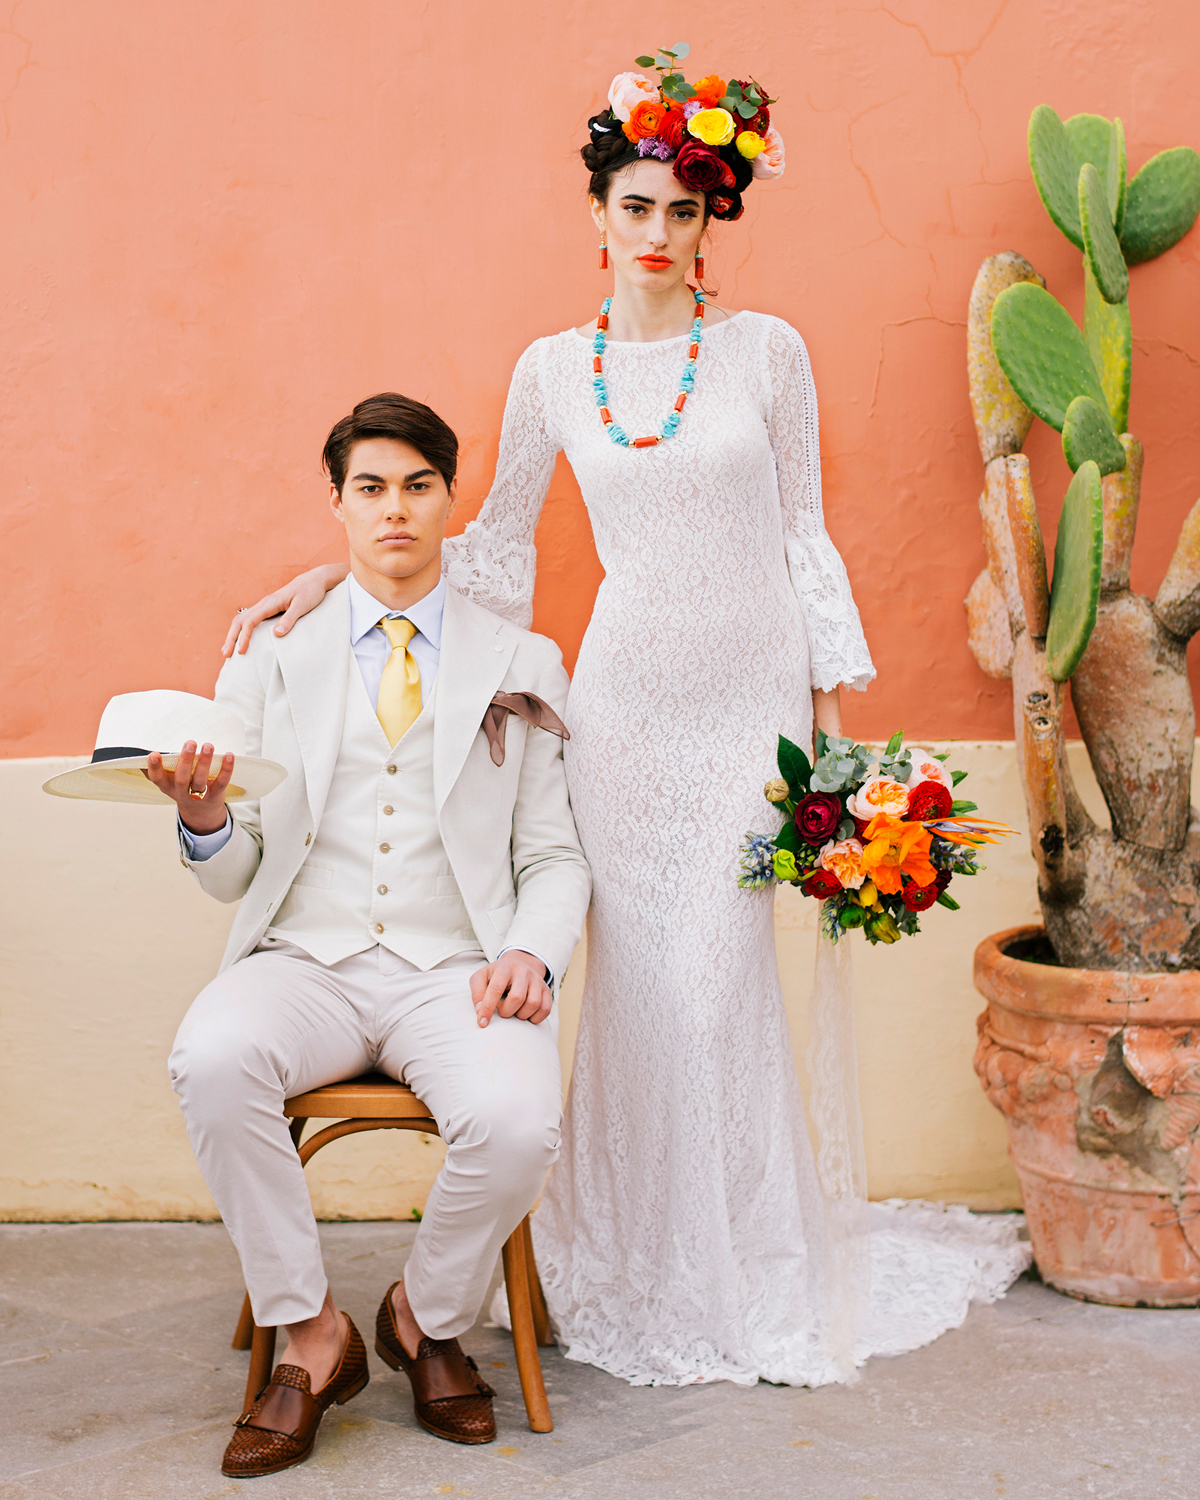 art-inspired wedding ideas bride dressed as frida kahlo